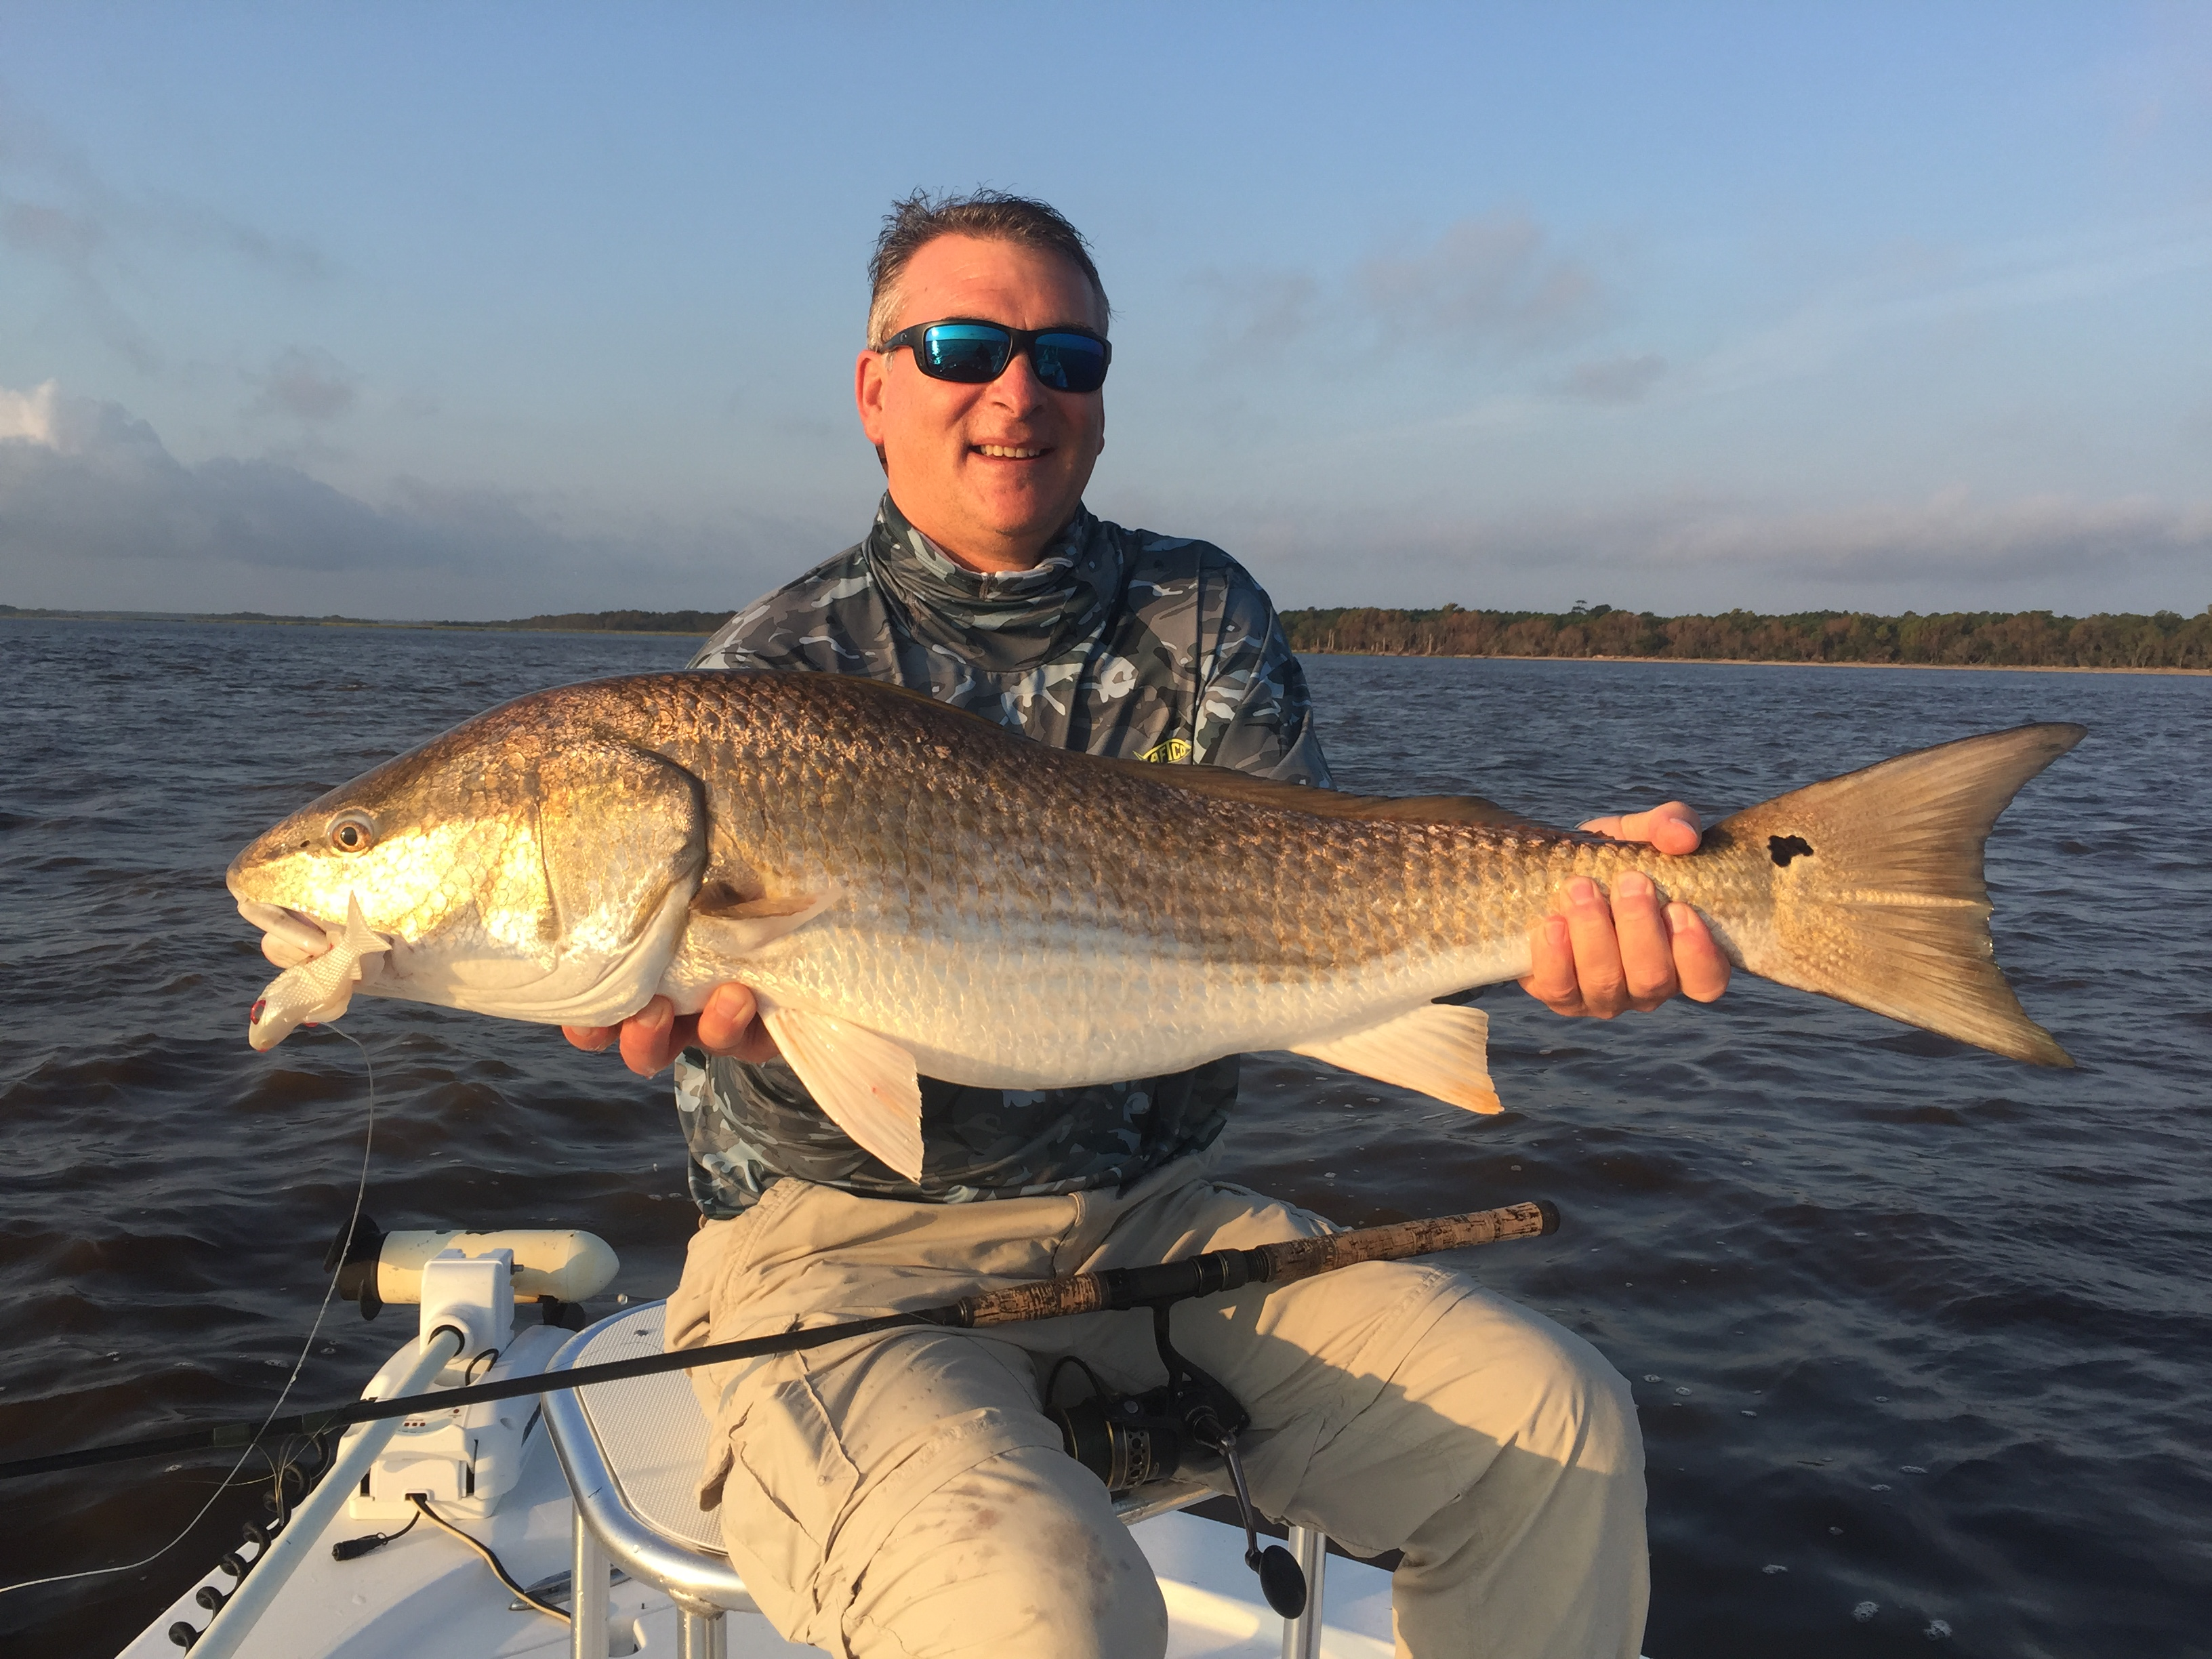 Redfishing in Georgetown South Carolina